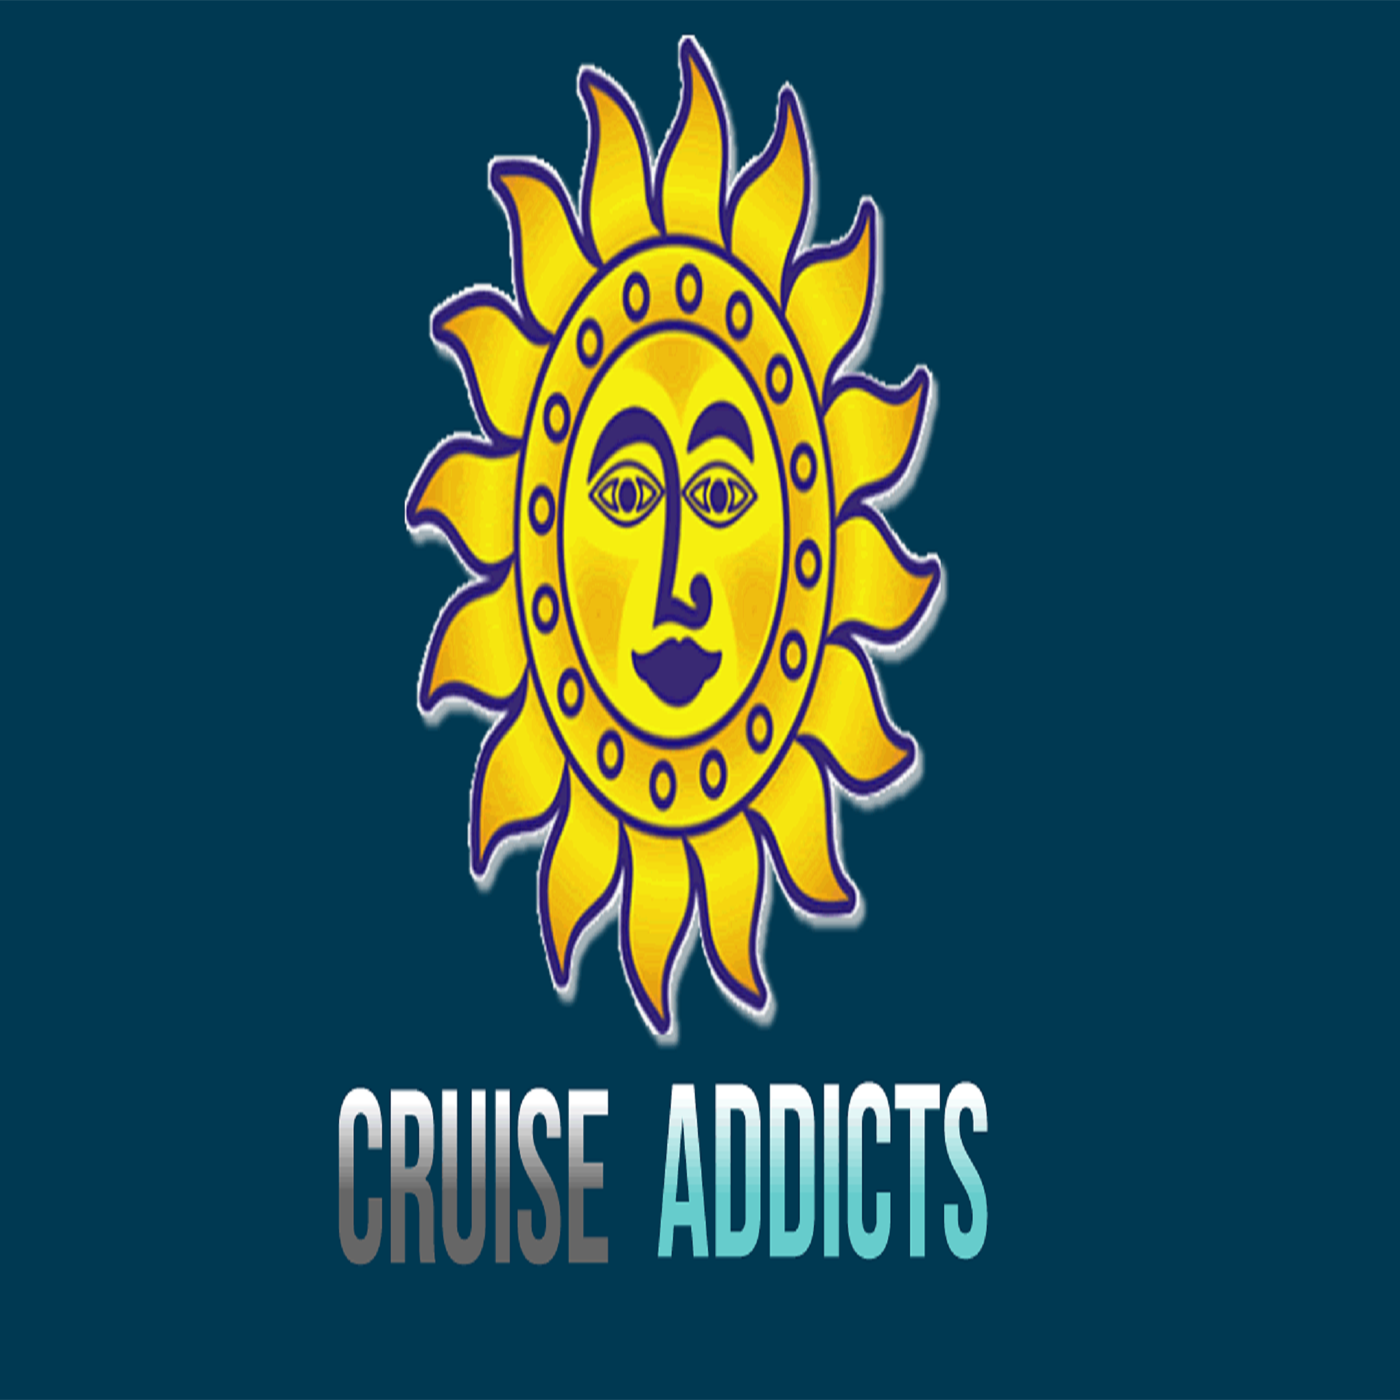 Cruise Addicts Talk Show